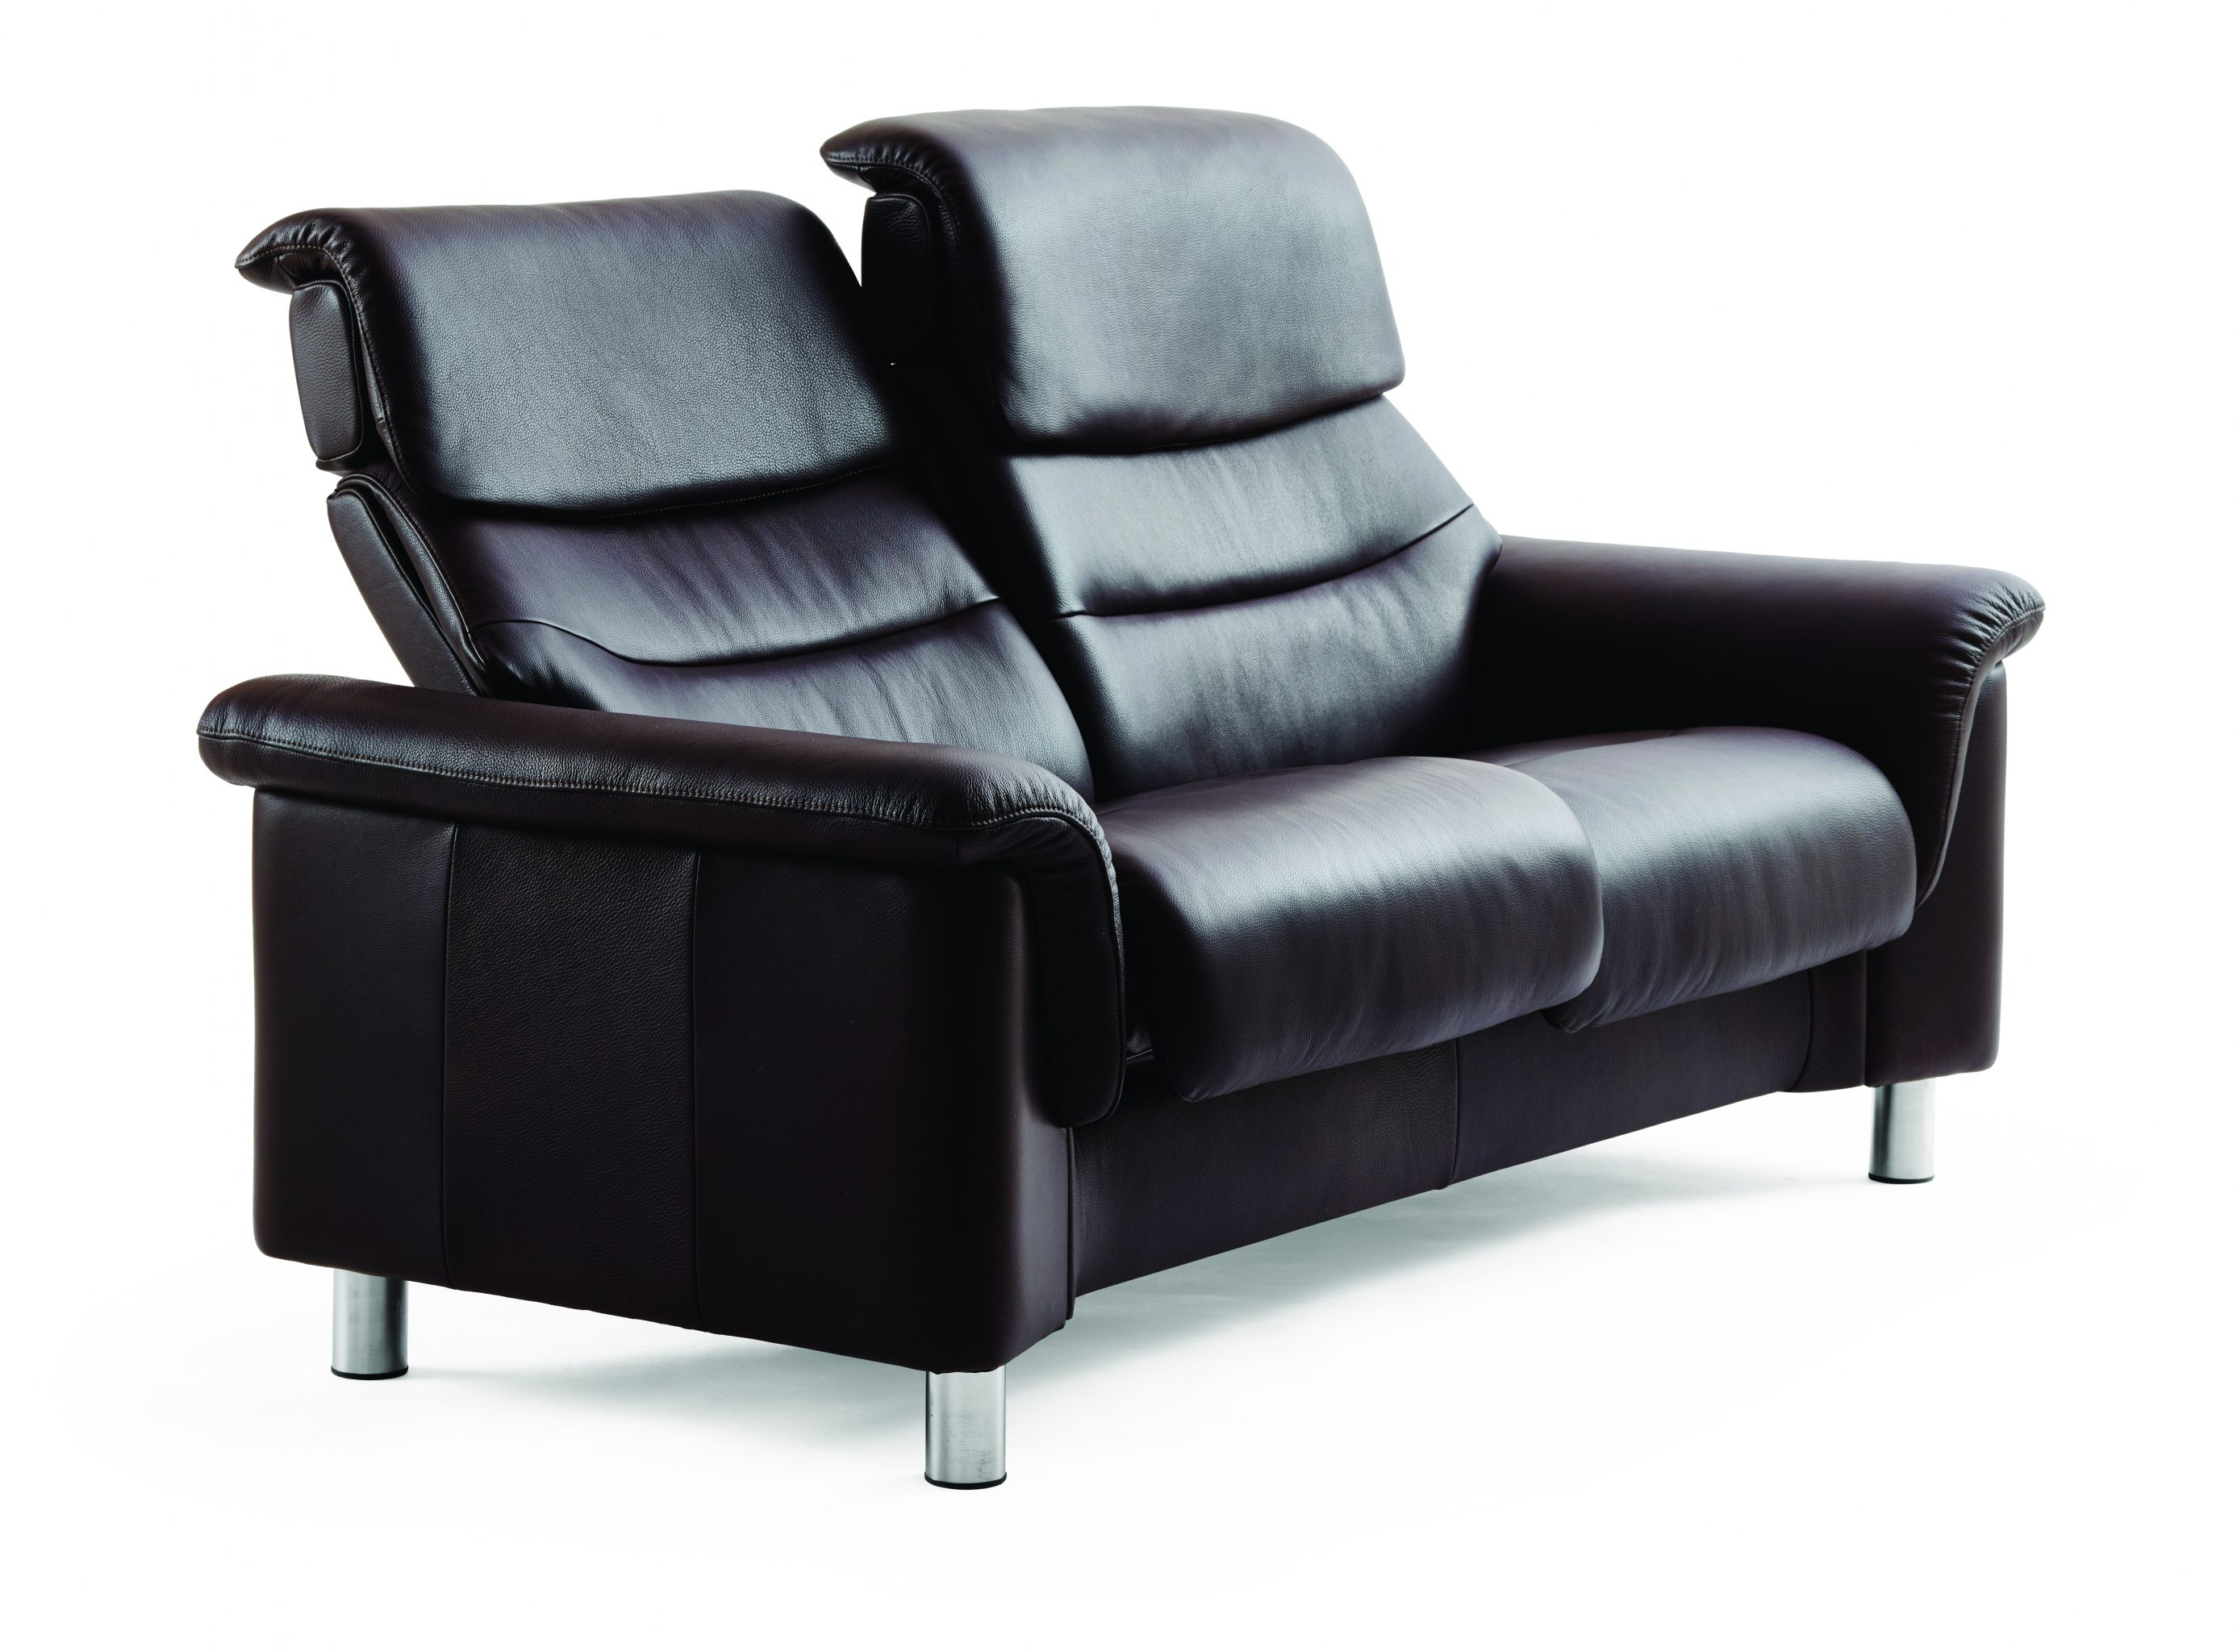 photo ekornes sofa reviews images ekornes stressless. Black Bedroom Furniture Sets. Home Design Ideas